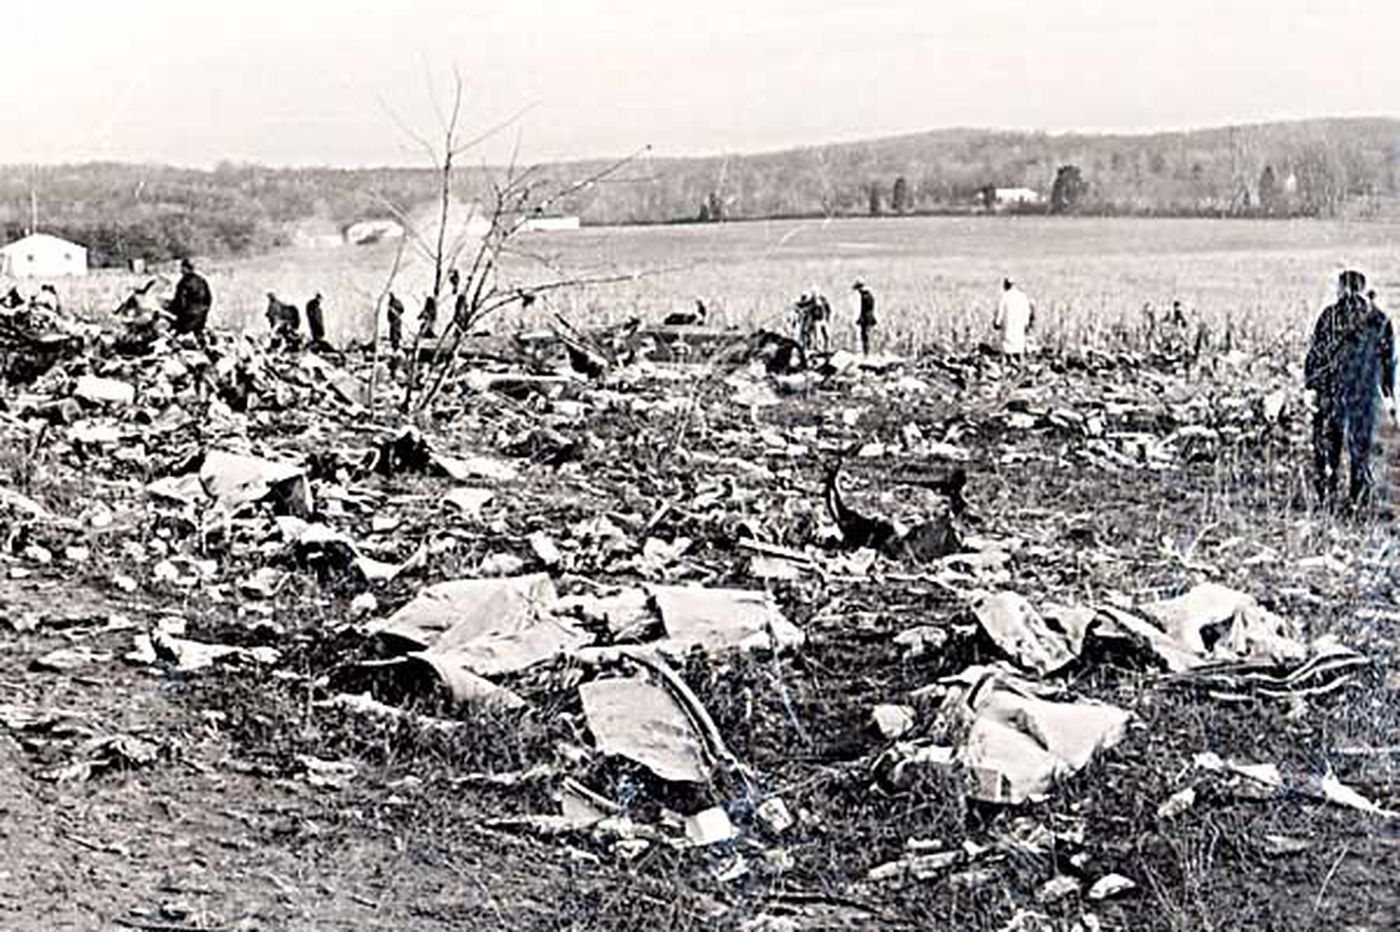 Gathering will commemorate 1963 air disaster with Phila. links